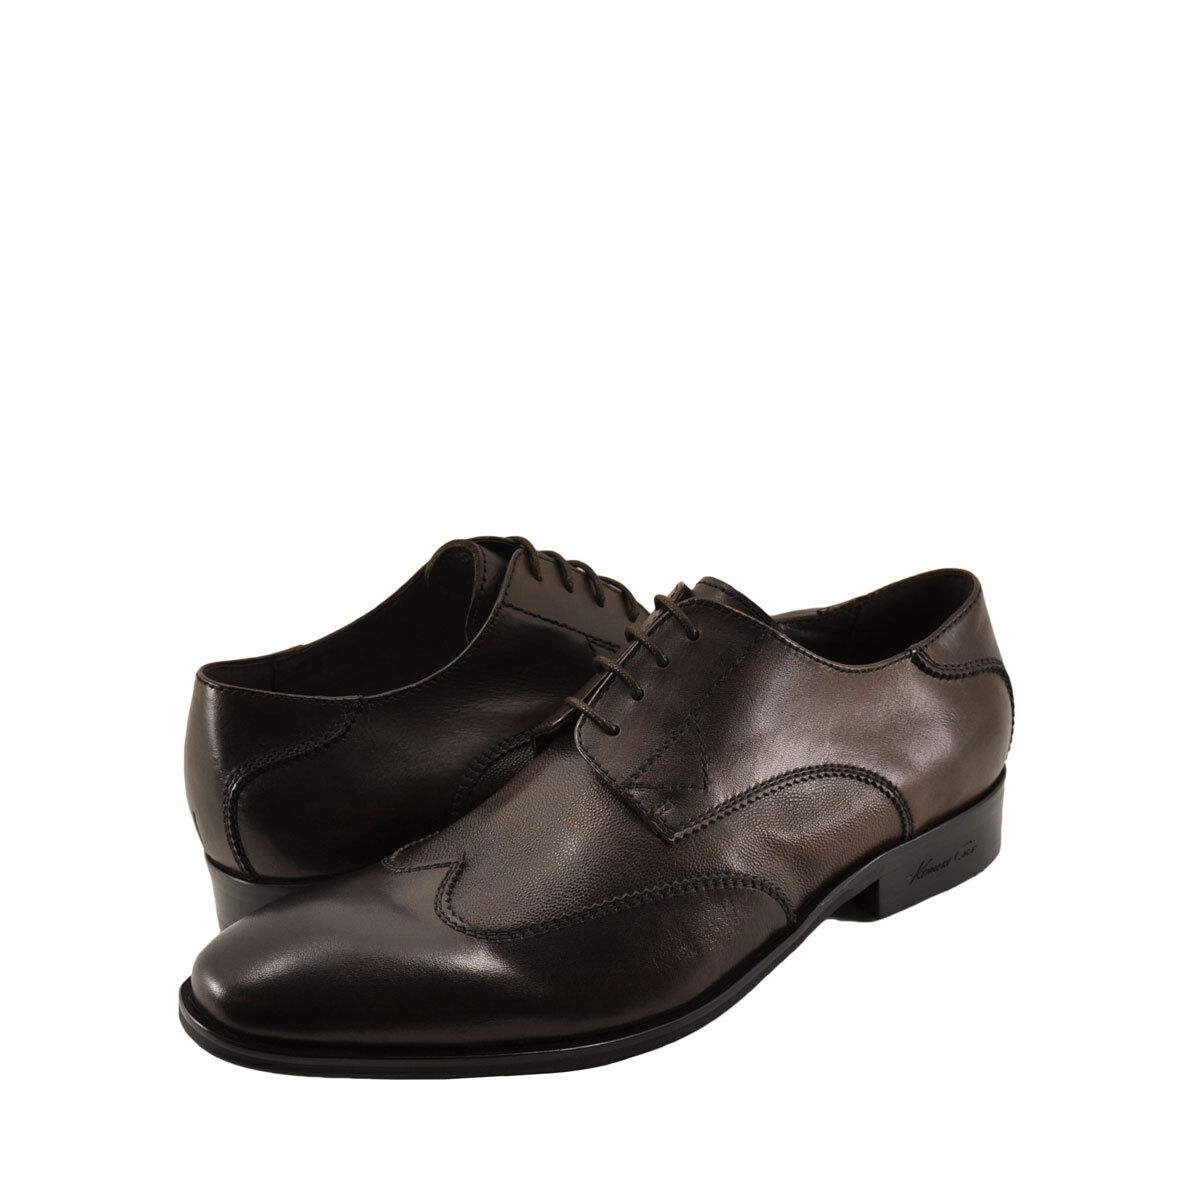 Men's Shoes Kenneth Cole Oil the Wheels Leather Oxfords KM62465LE Brown *New*